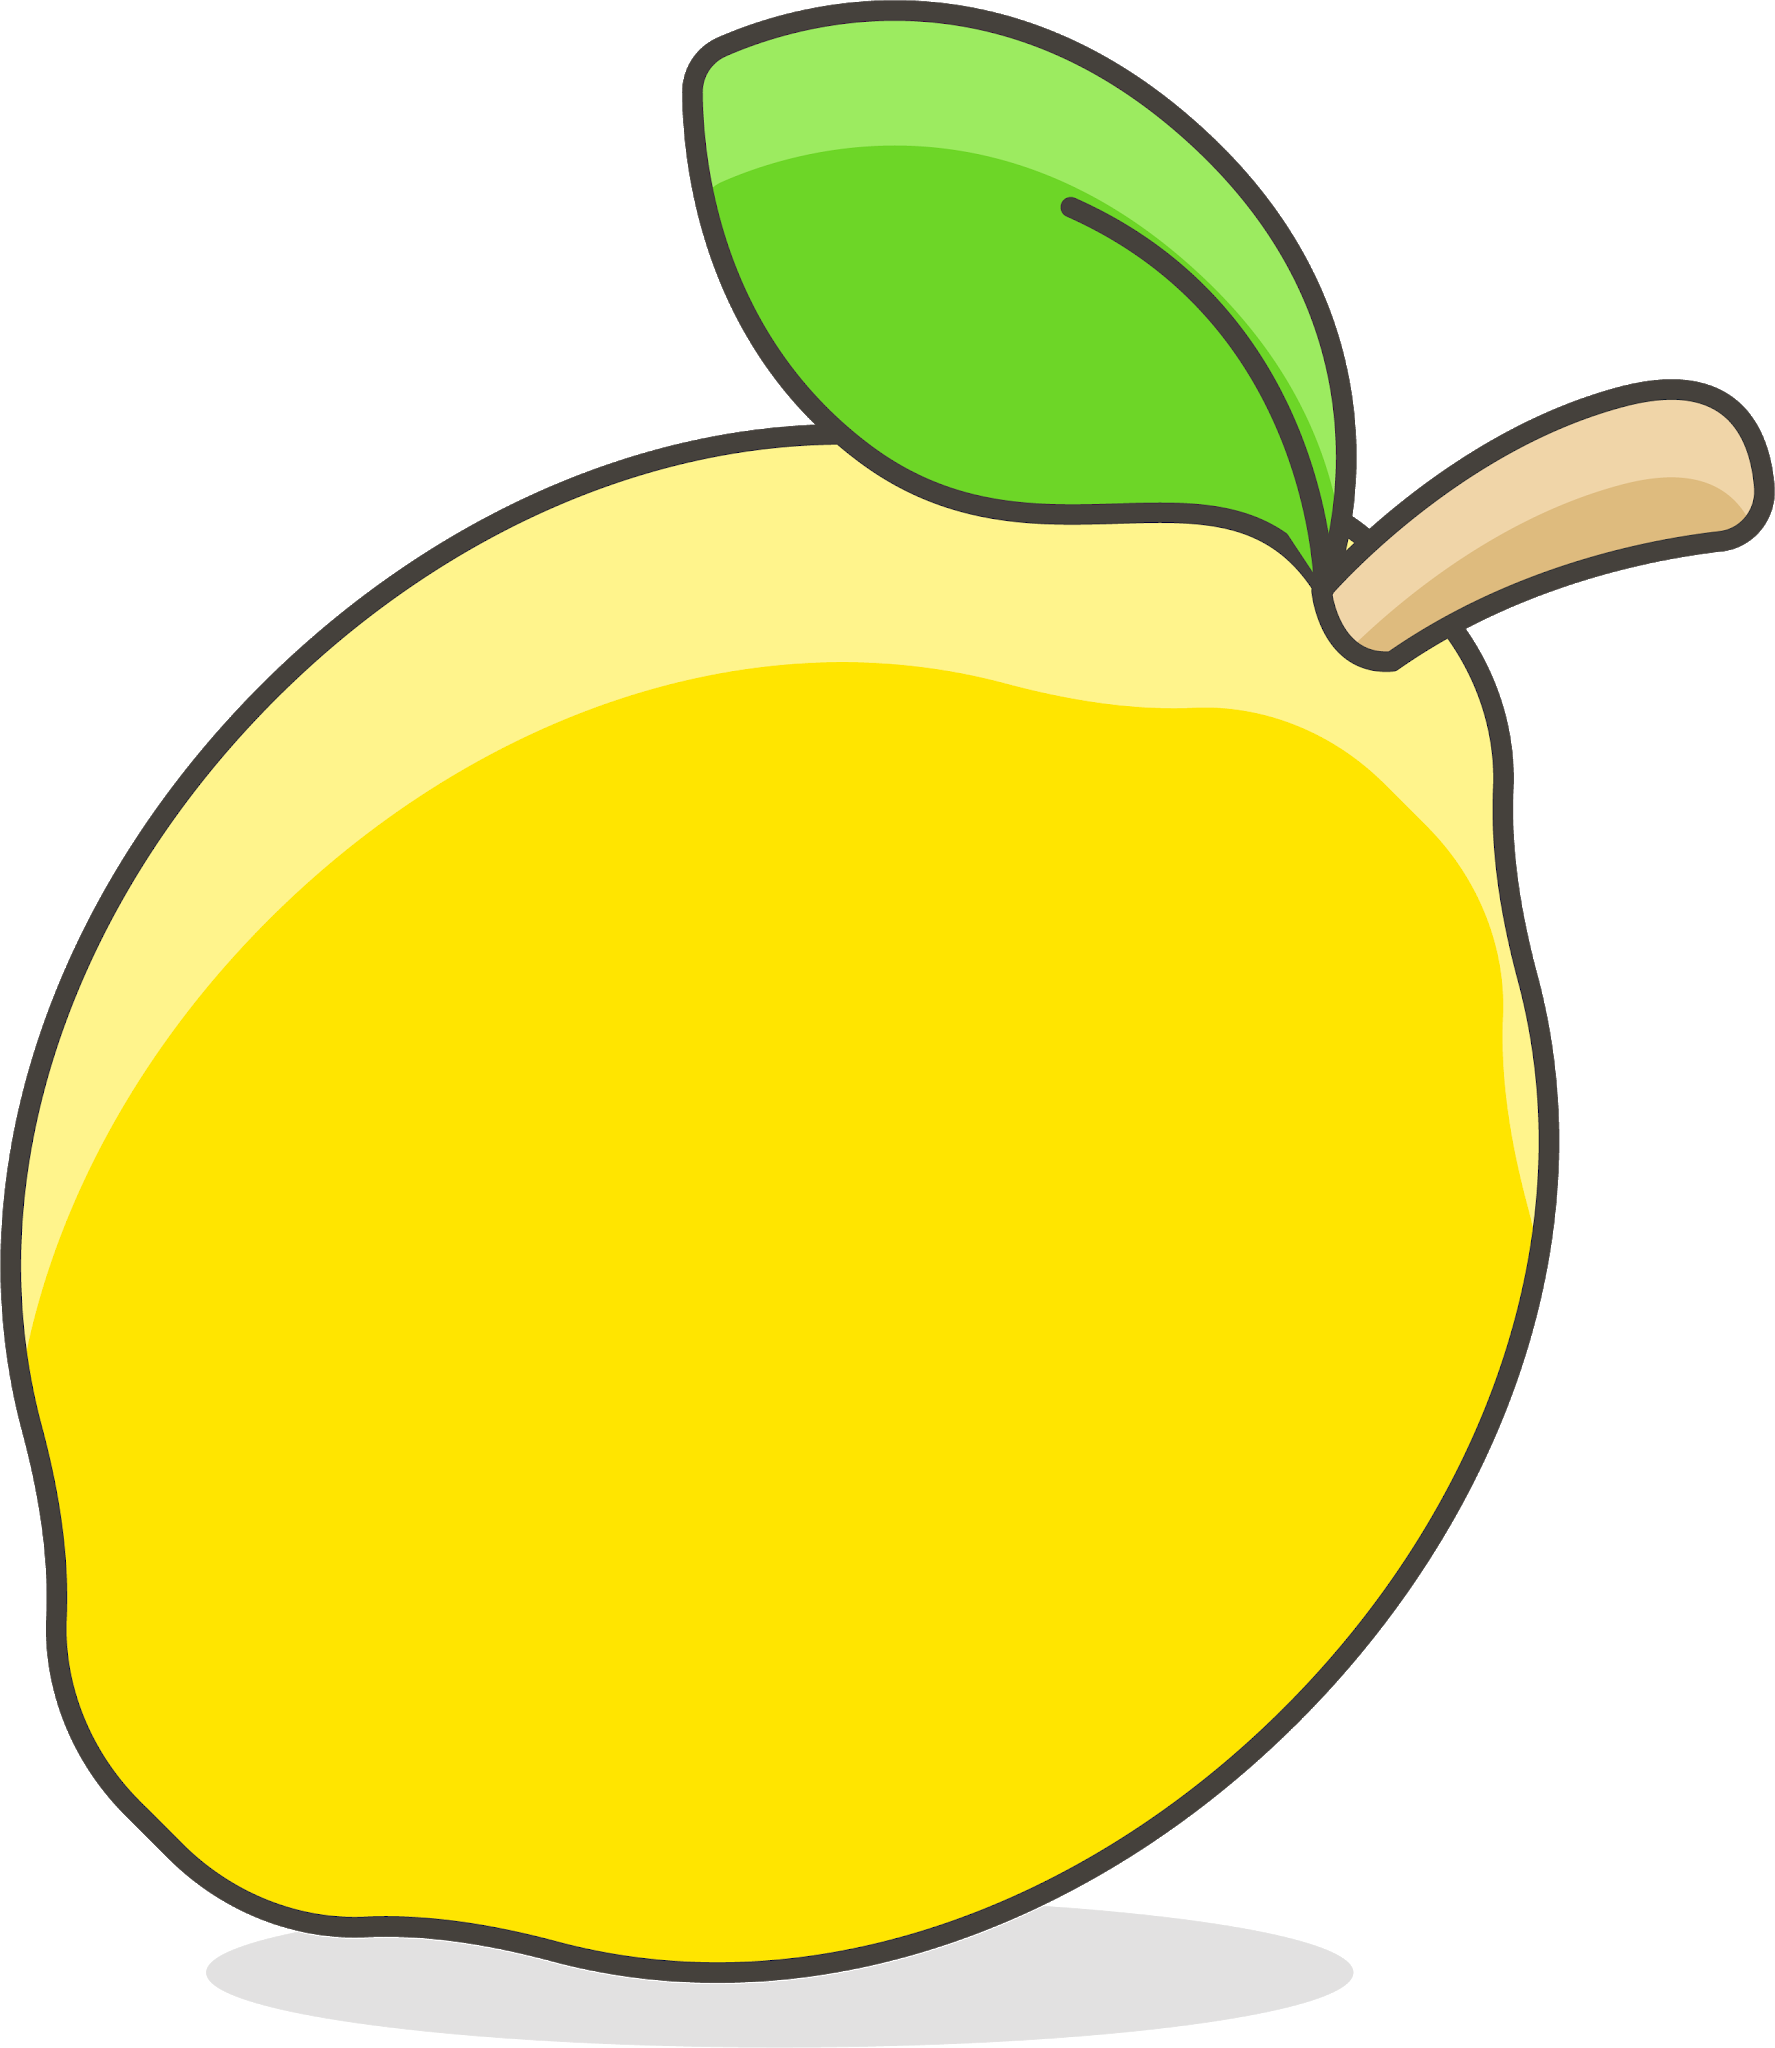 Pin by pngsector on Lemon Transparent PNG Image & Lemon.